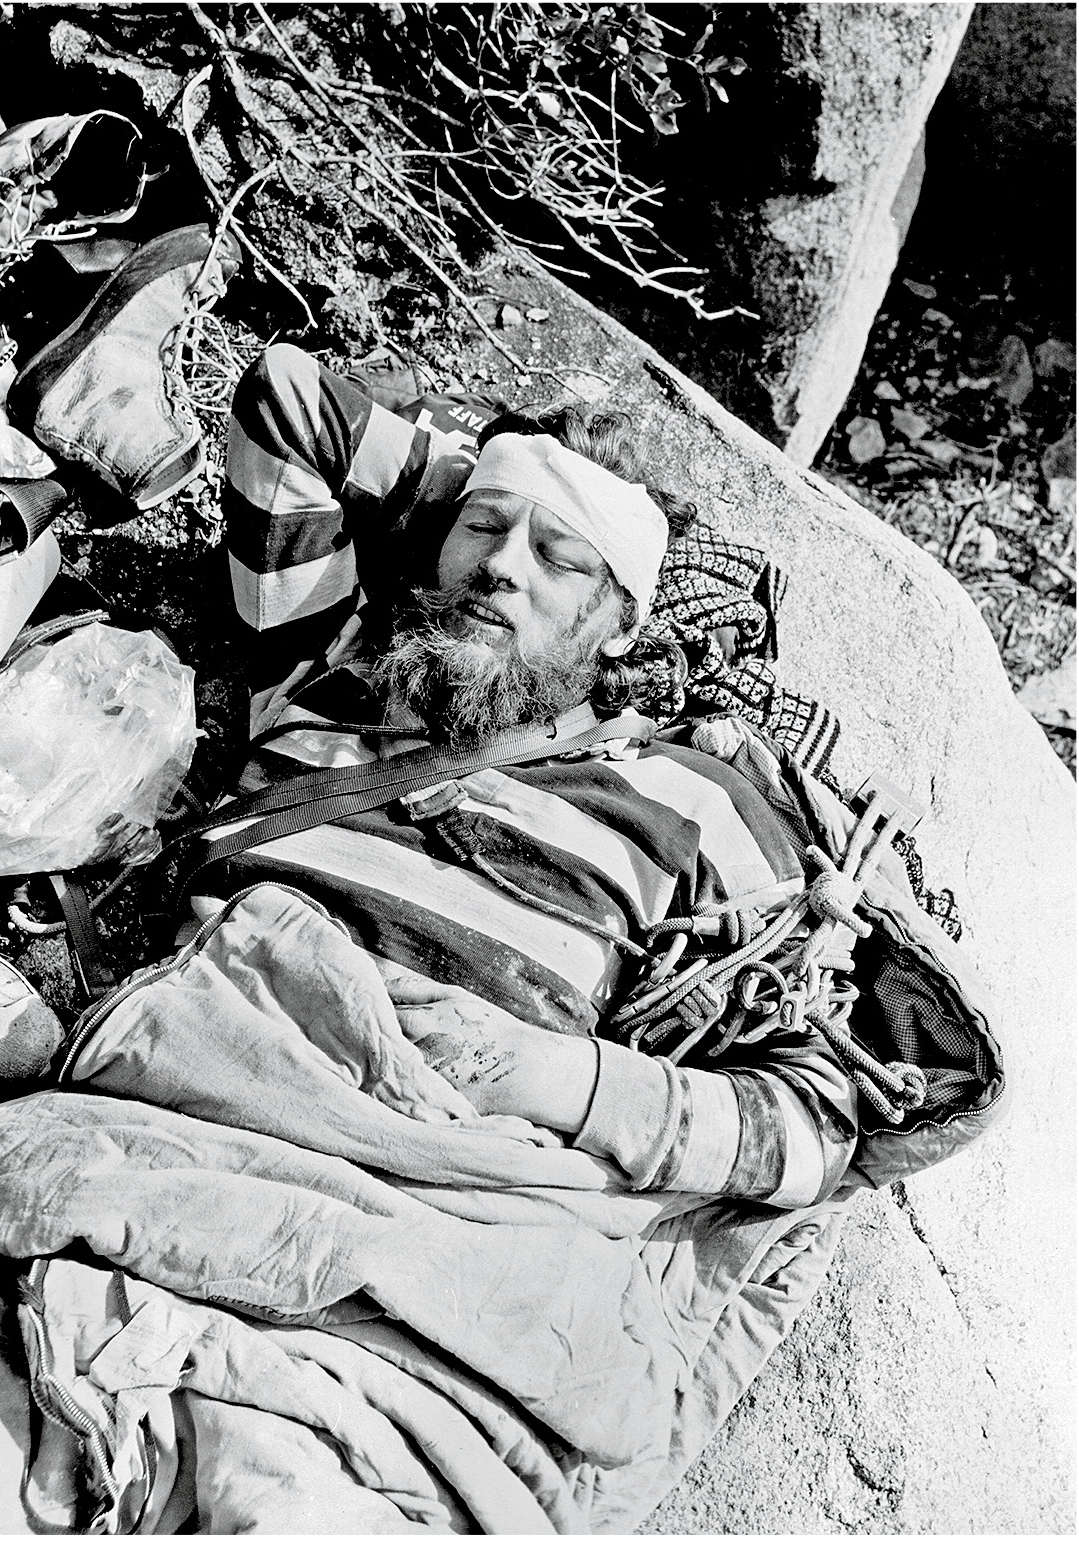 Michael Kennedy, after his fall on Granite Mountain ('Wi:kvte:wa), Arizona. [Photo] Ed Webster